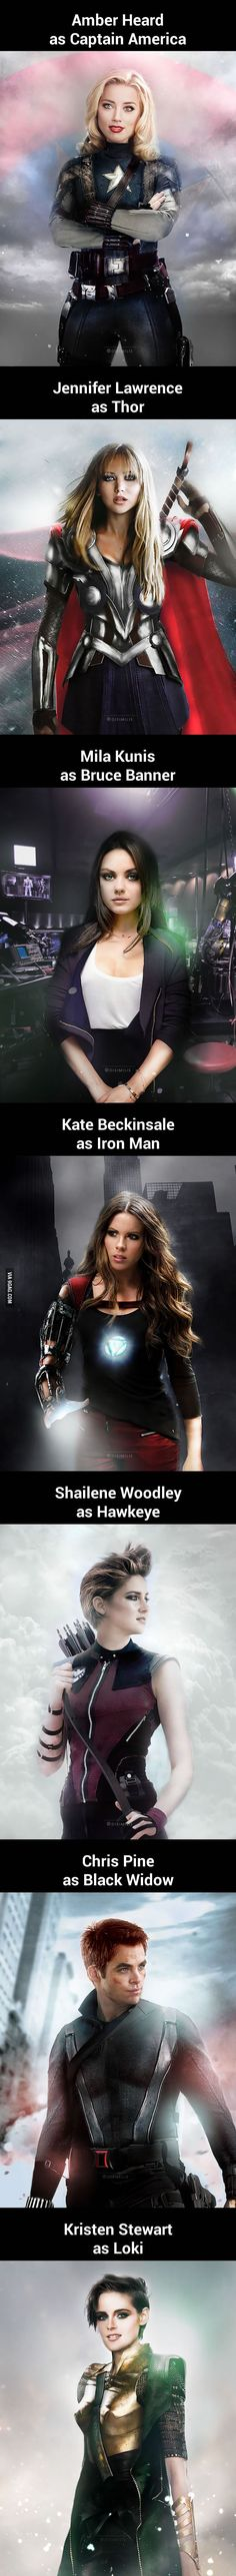 Genderbend Marvel and actors--- I would watch the fuck outta this - but def not enough queer characters